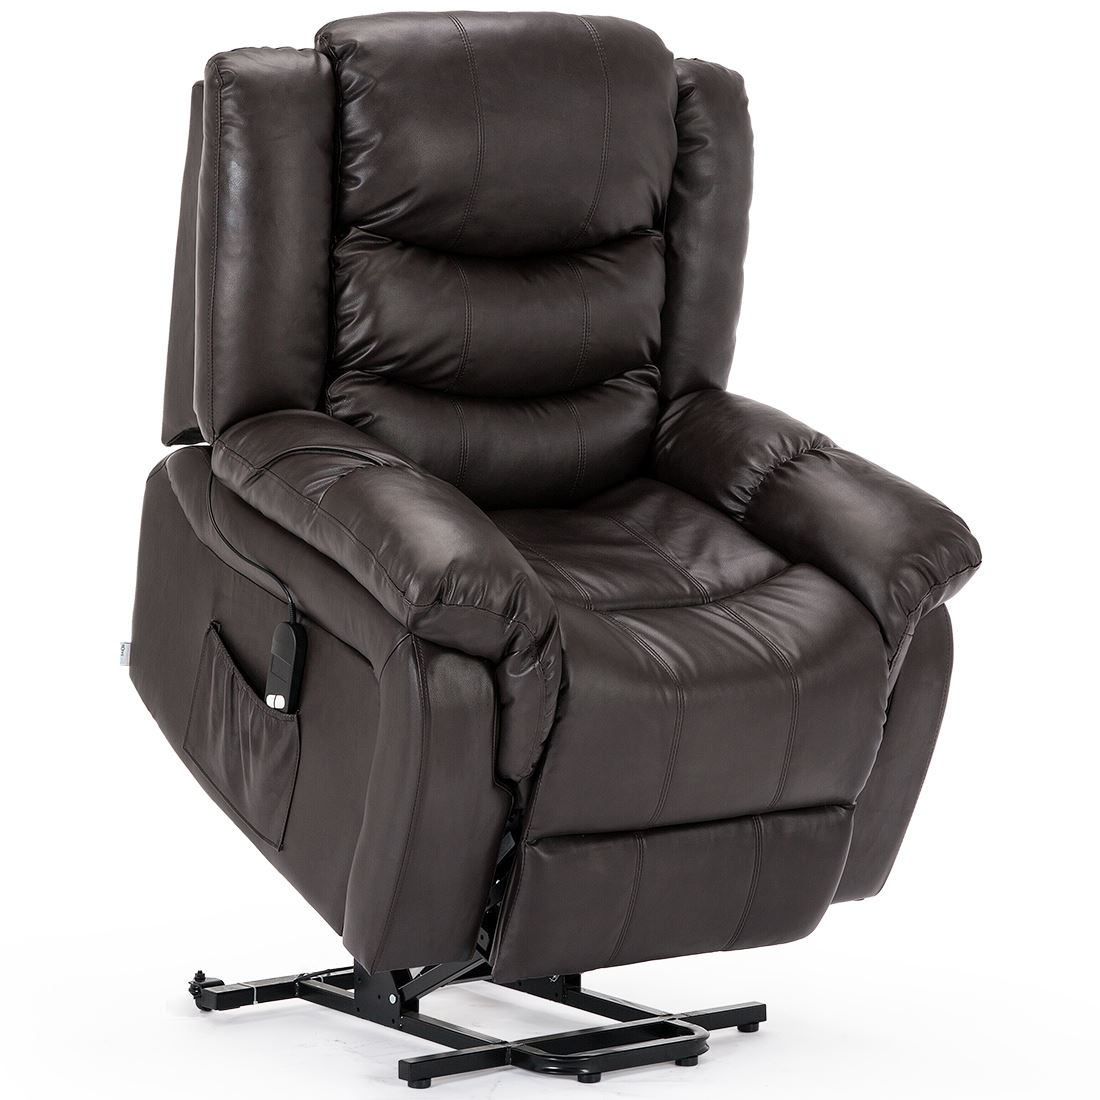 SEATTLE-ELECTRIC-RISE-REAL-LEATHER-RECLINER-ARMCHAIR-SOFA-HOME-LOUNGE-CHAIR thumbnail 17